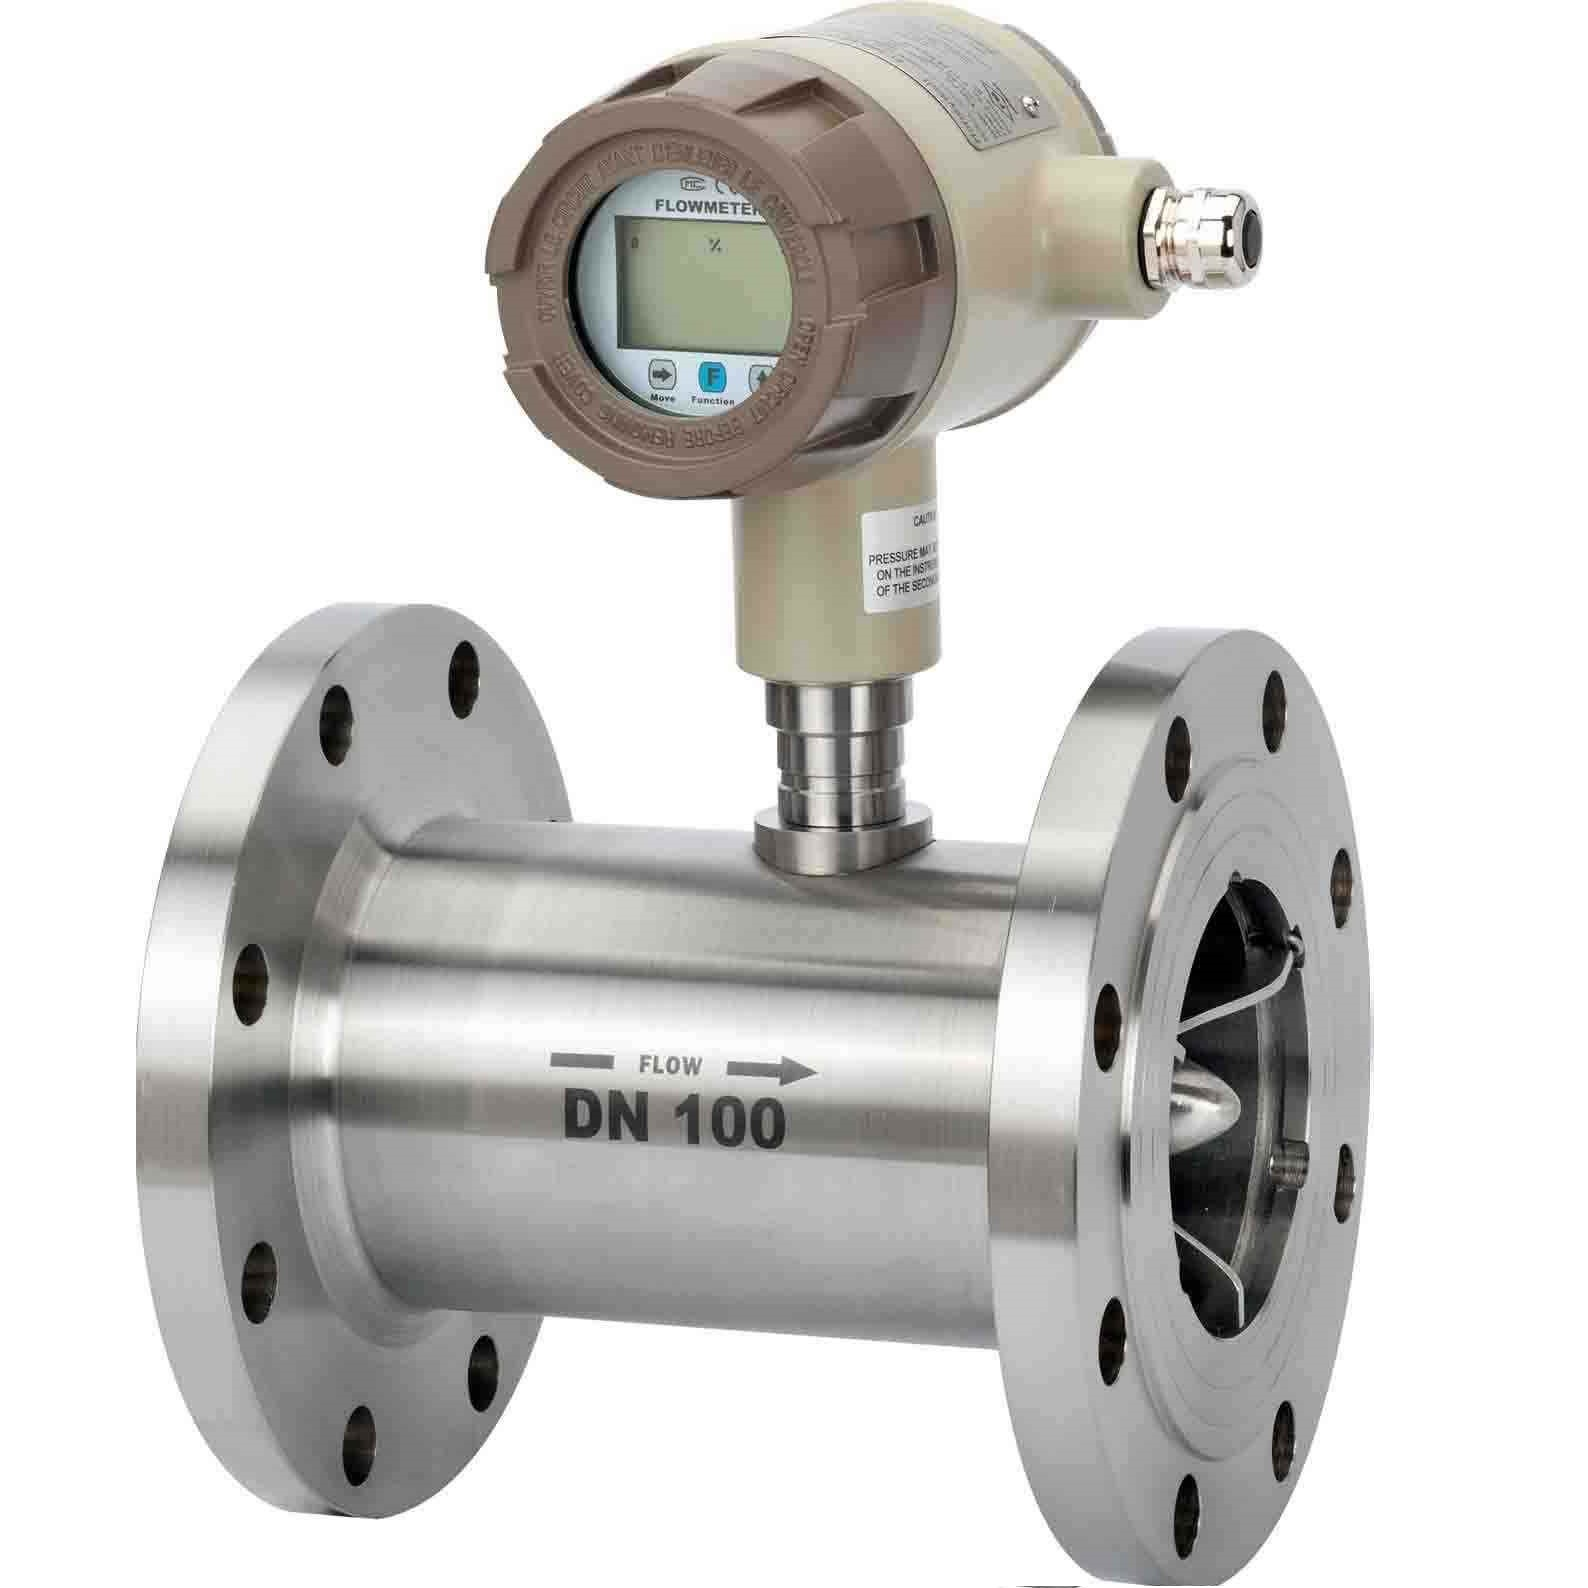 Digital Turbine flow meter to be used to measure chemical